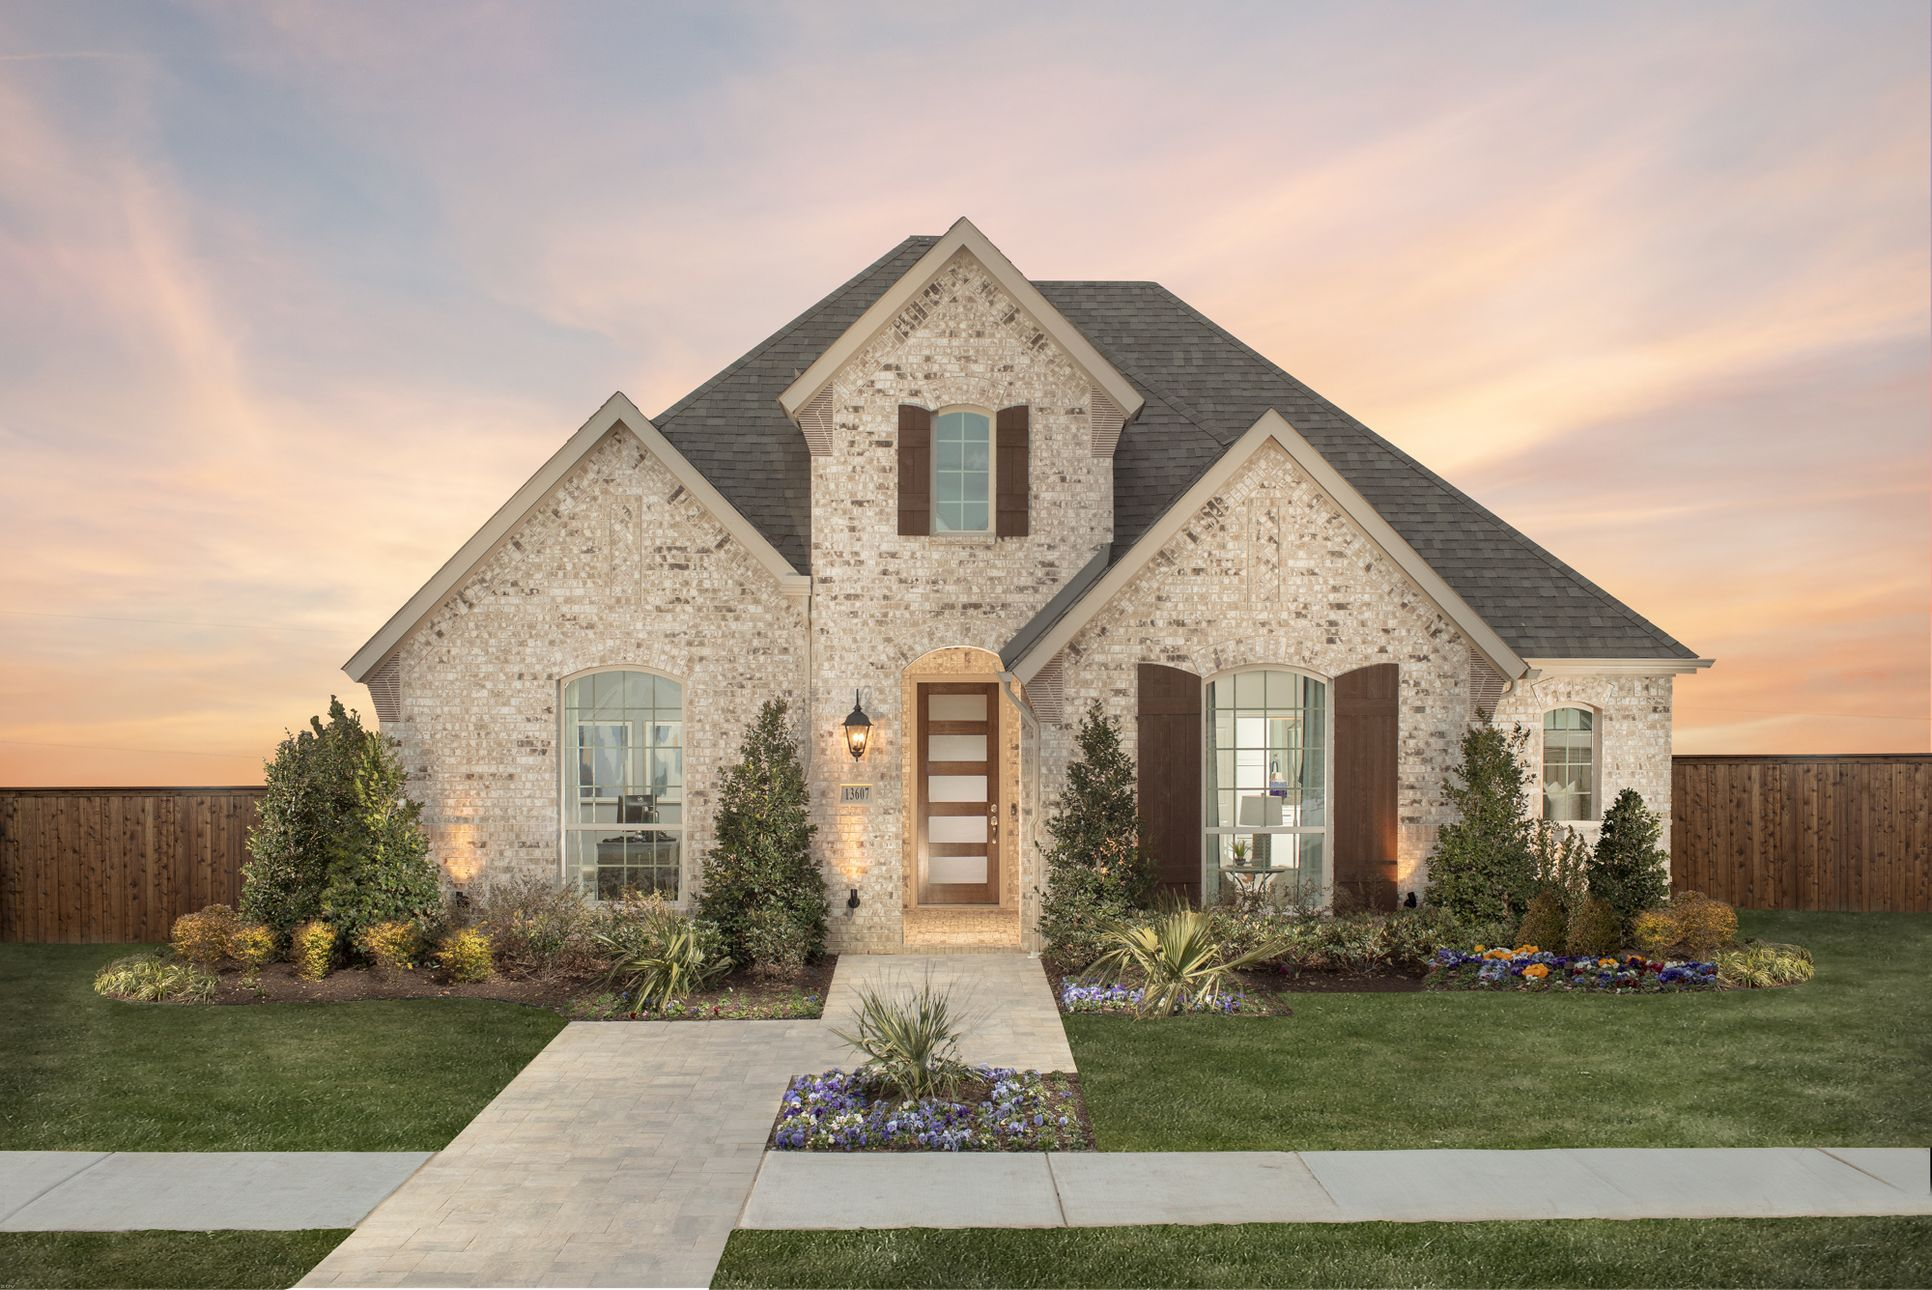 Front Elevation - Plan 1553 - by American Legend Homes